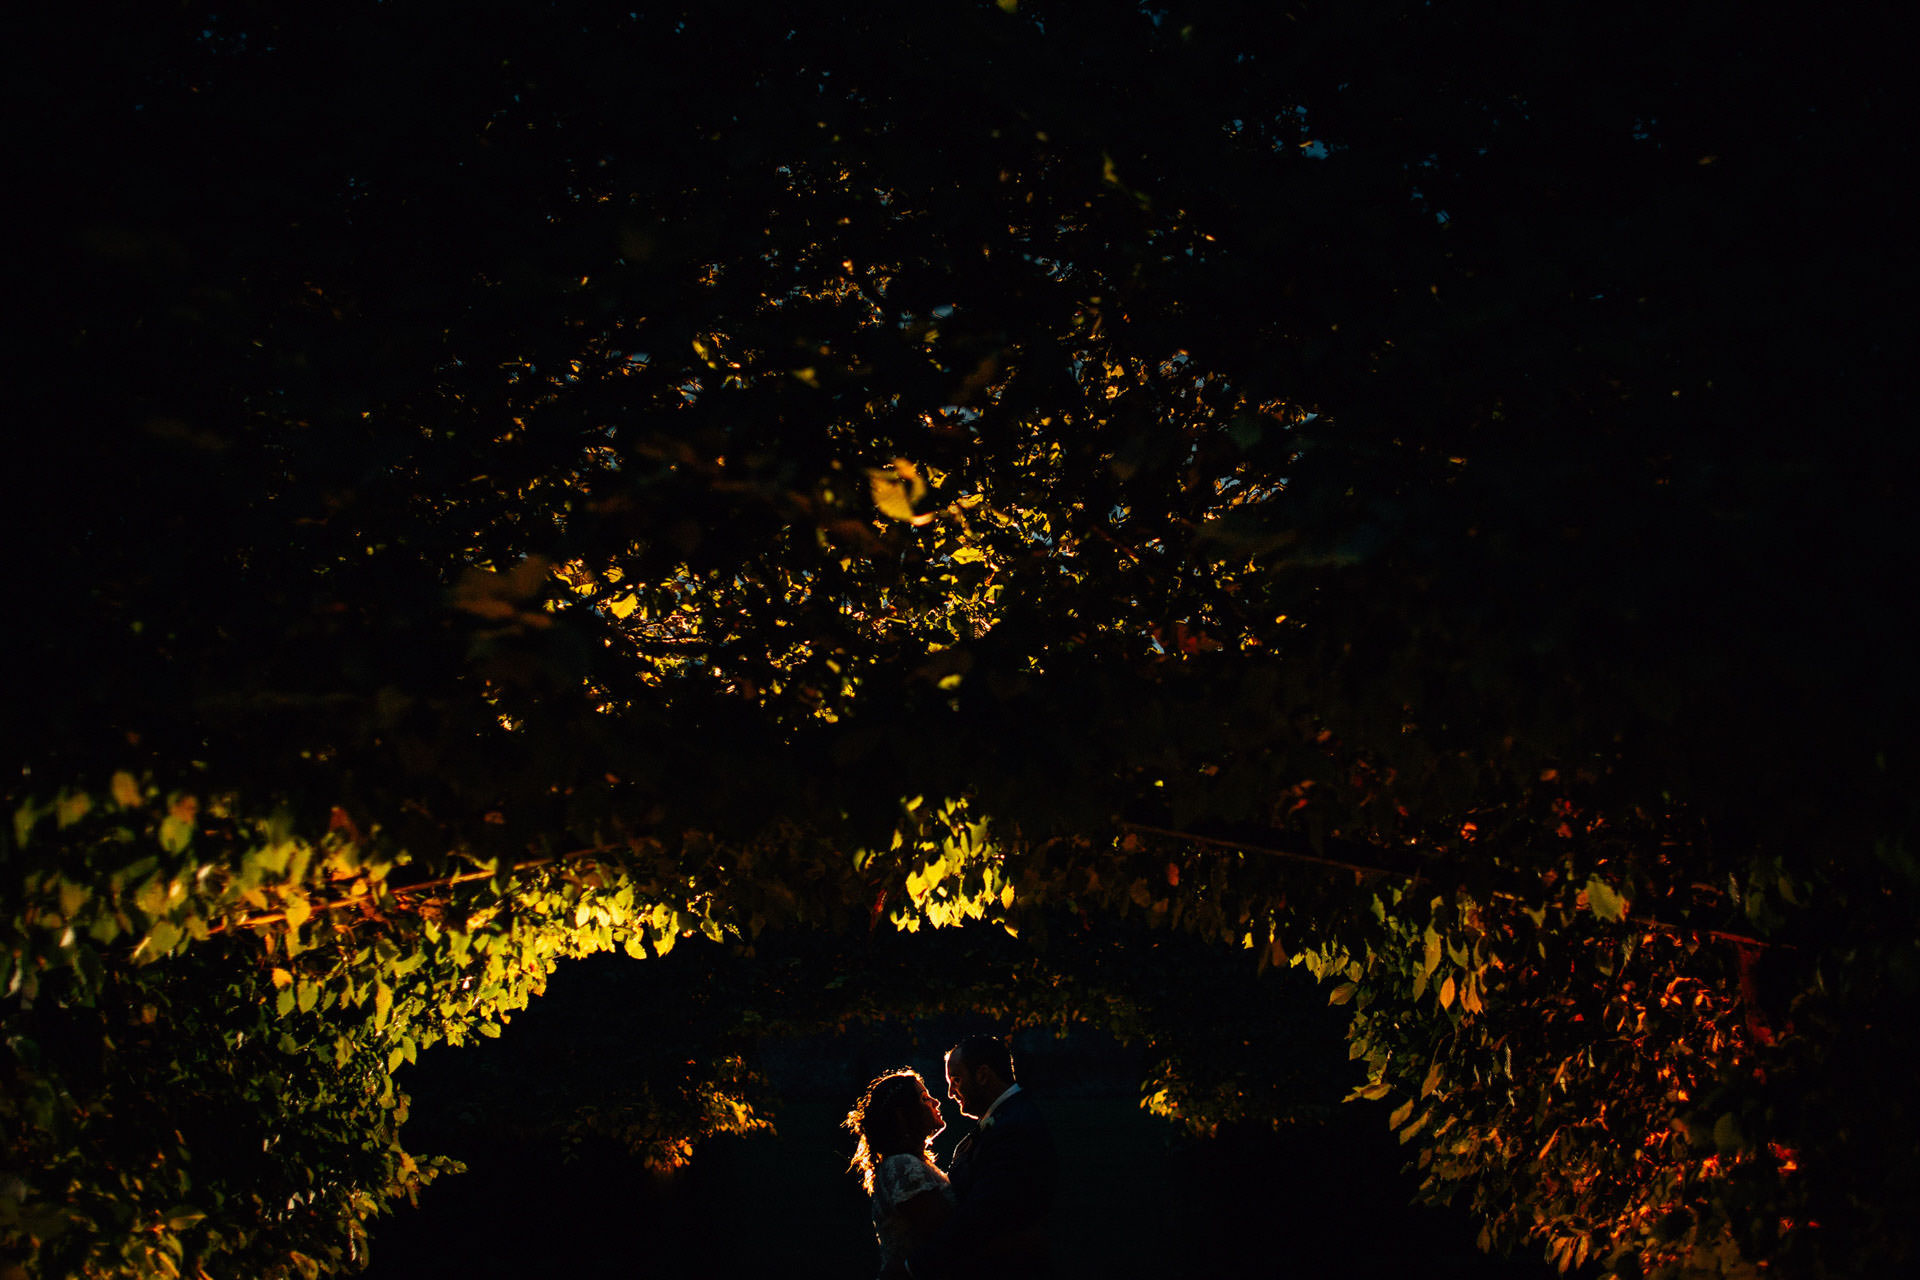 Best wedding photography 2016 - silhouette of couple in the bushes